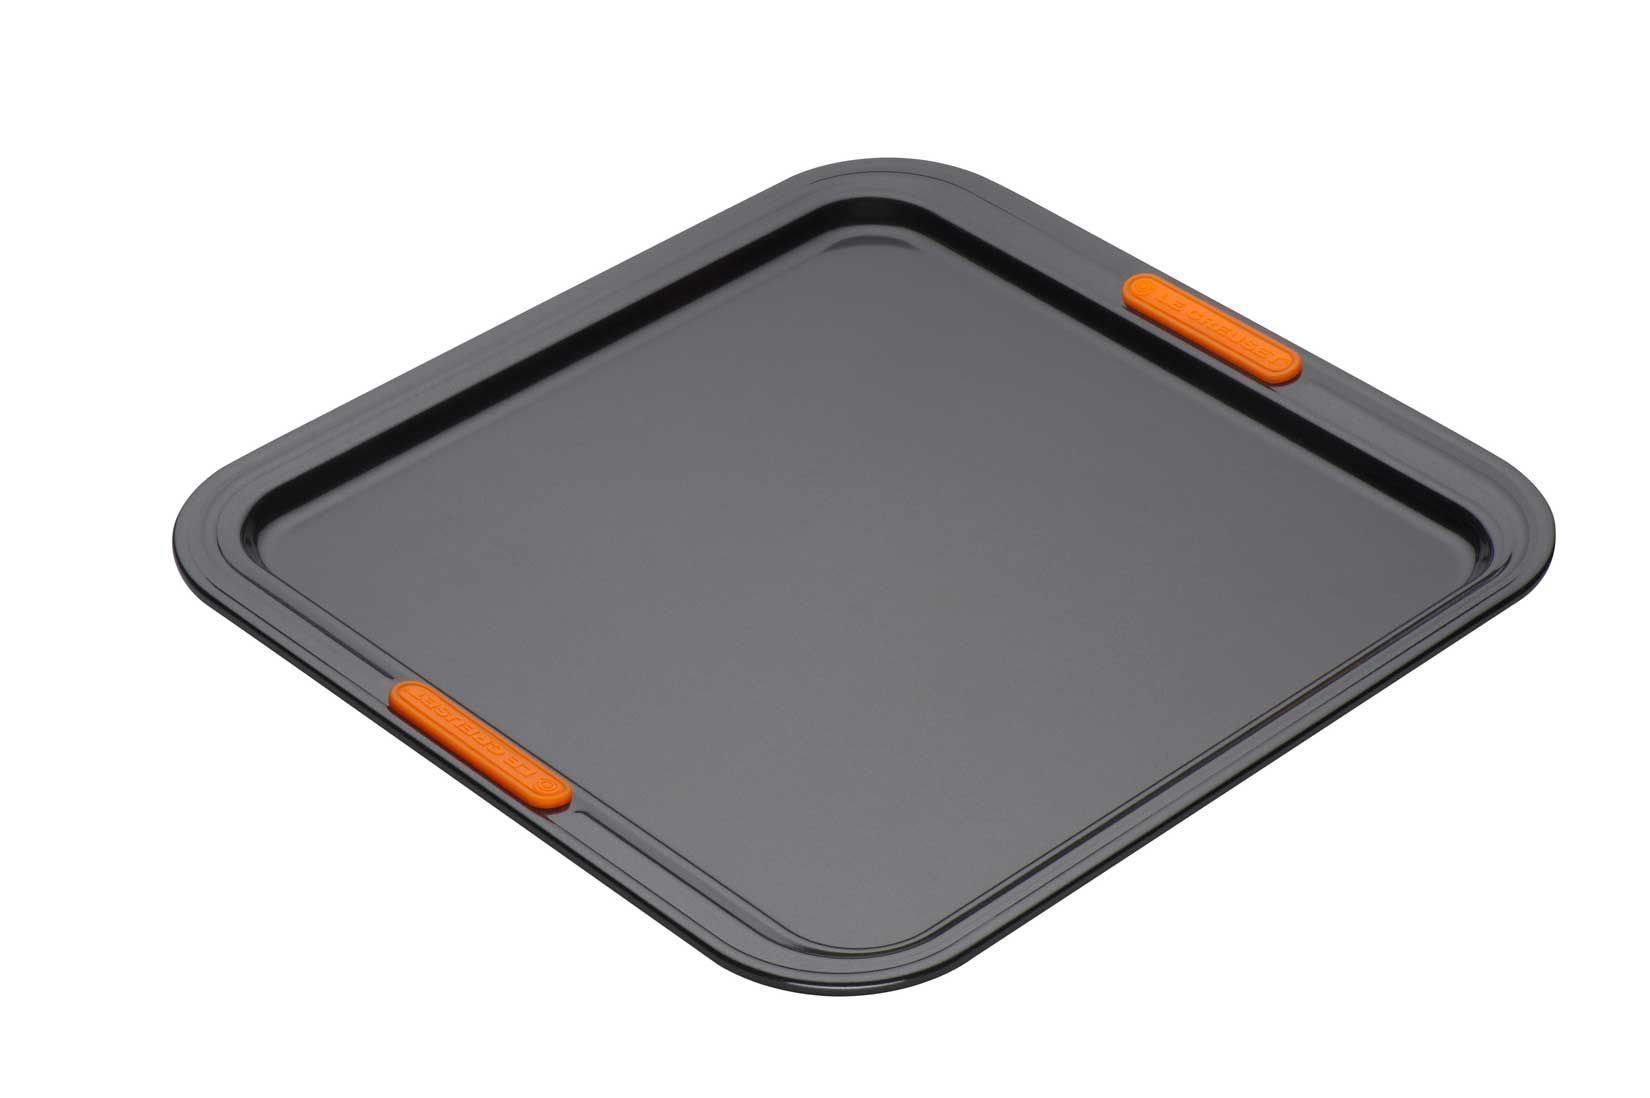 Bakeware rectangular baking sheet